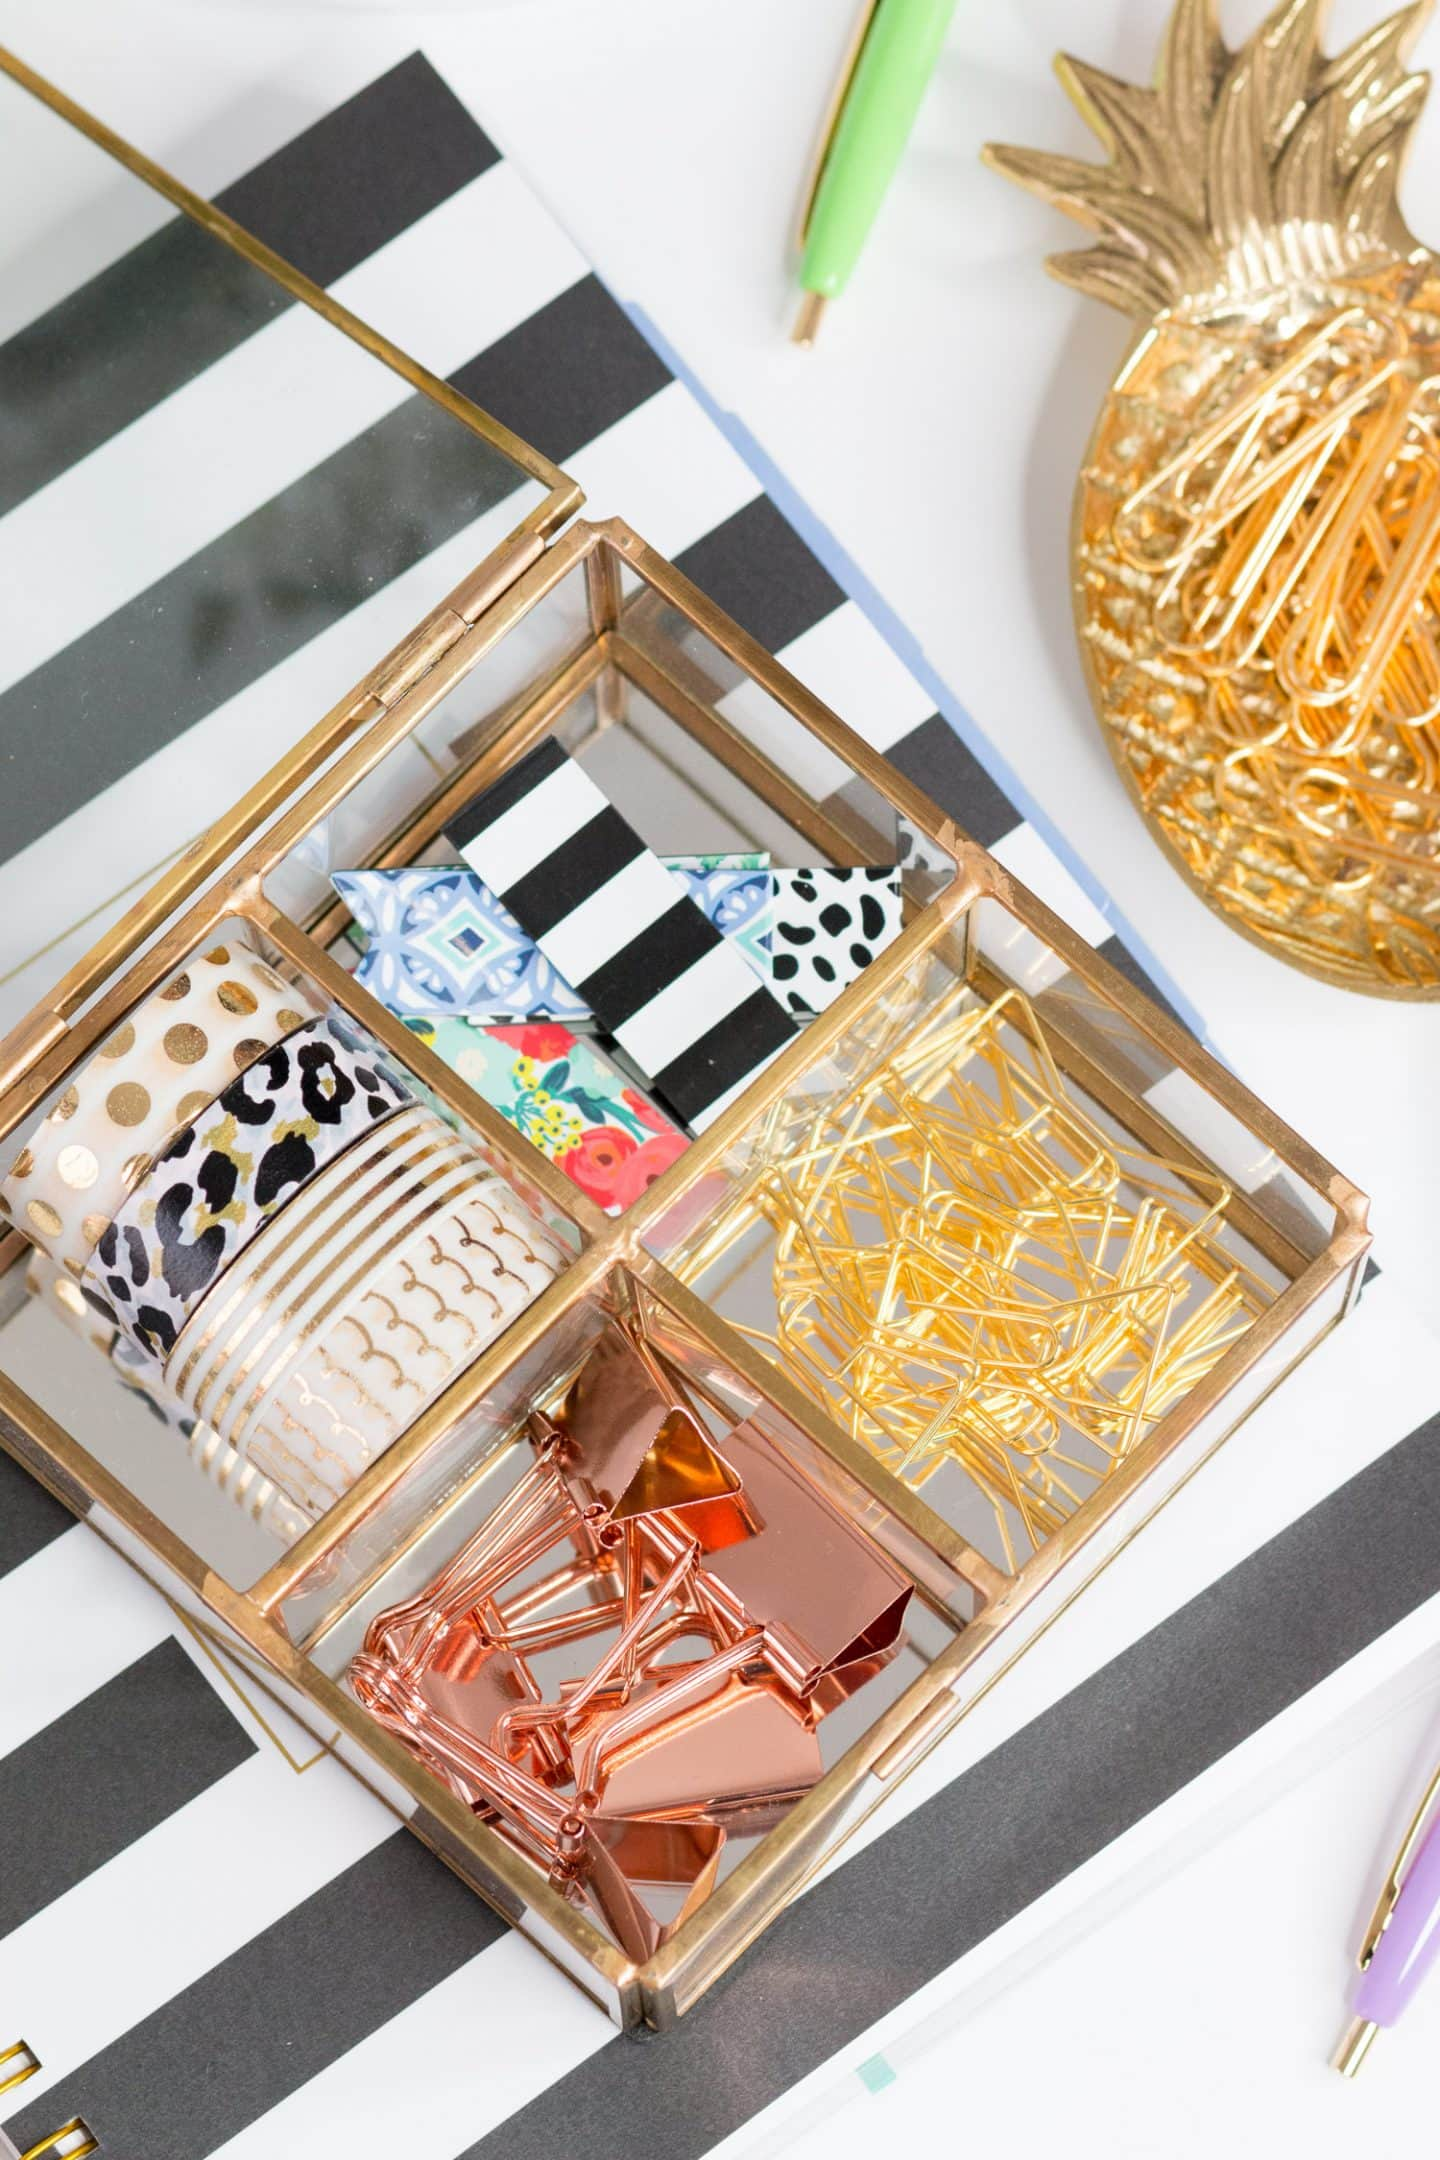 cute office supplies and stationery goal getter game plan from blogger Ashley Brooke Nicholas